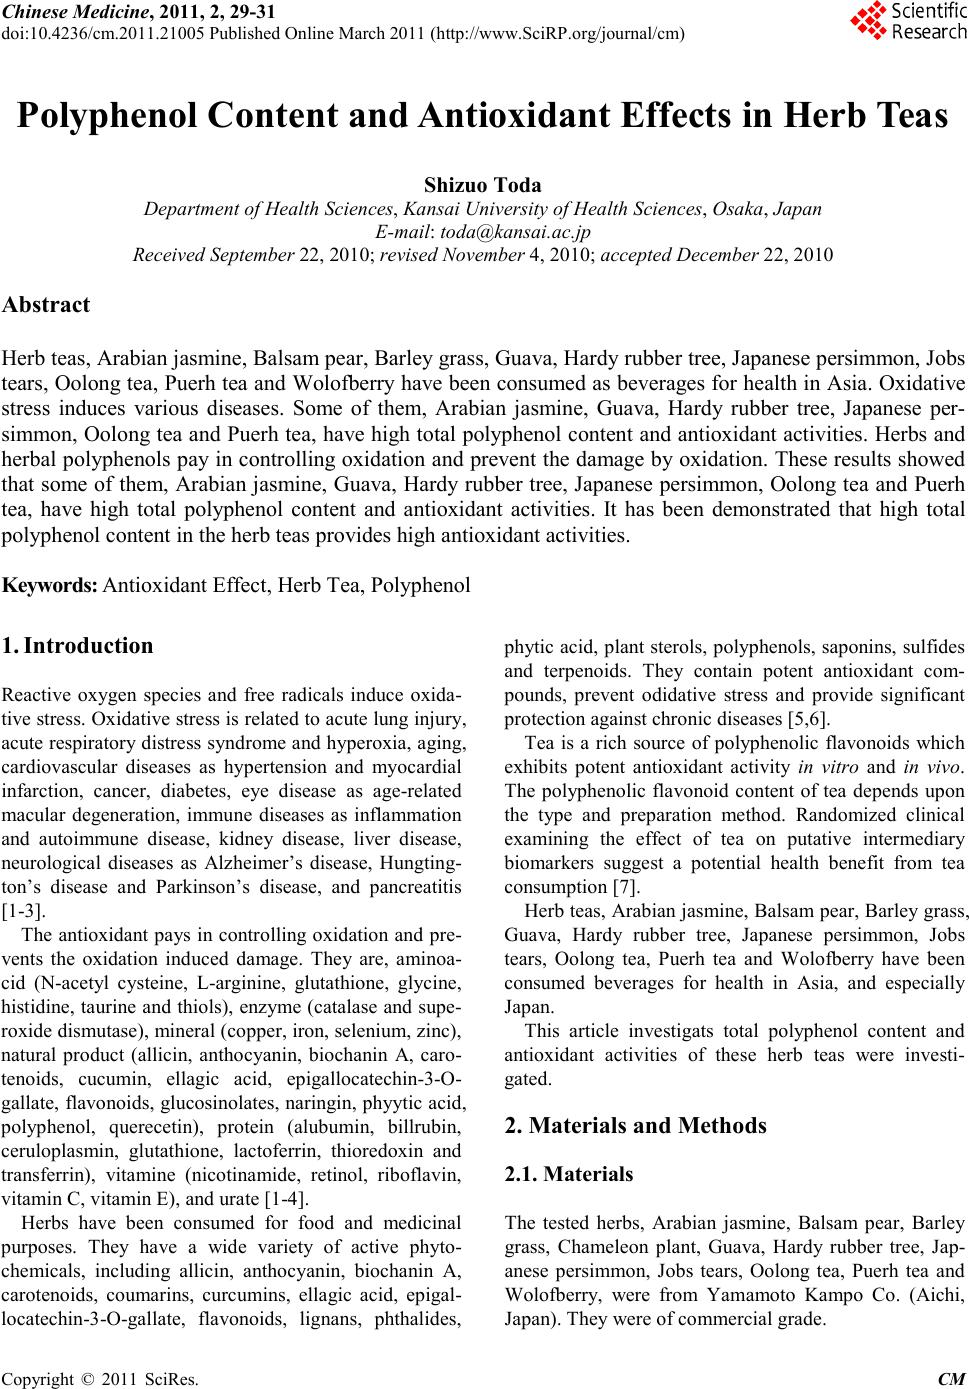 thesis on polyphenols